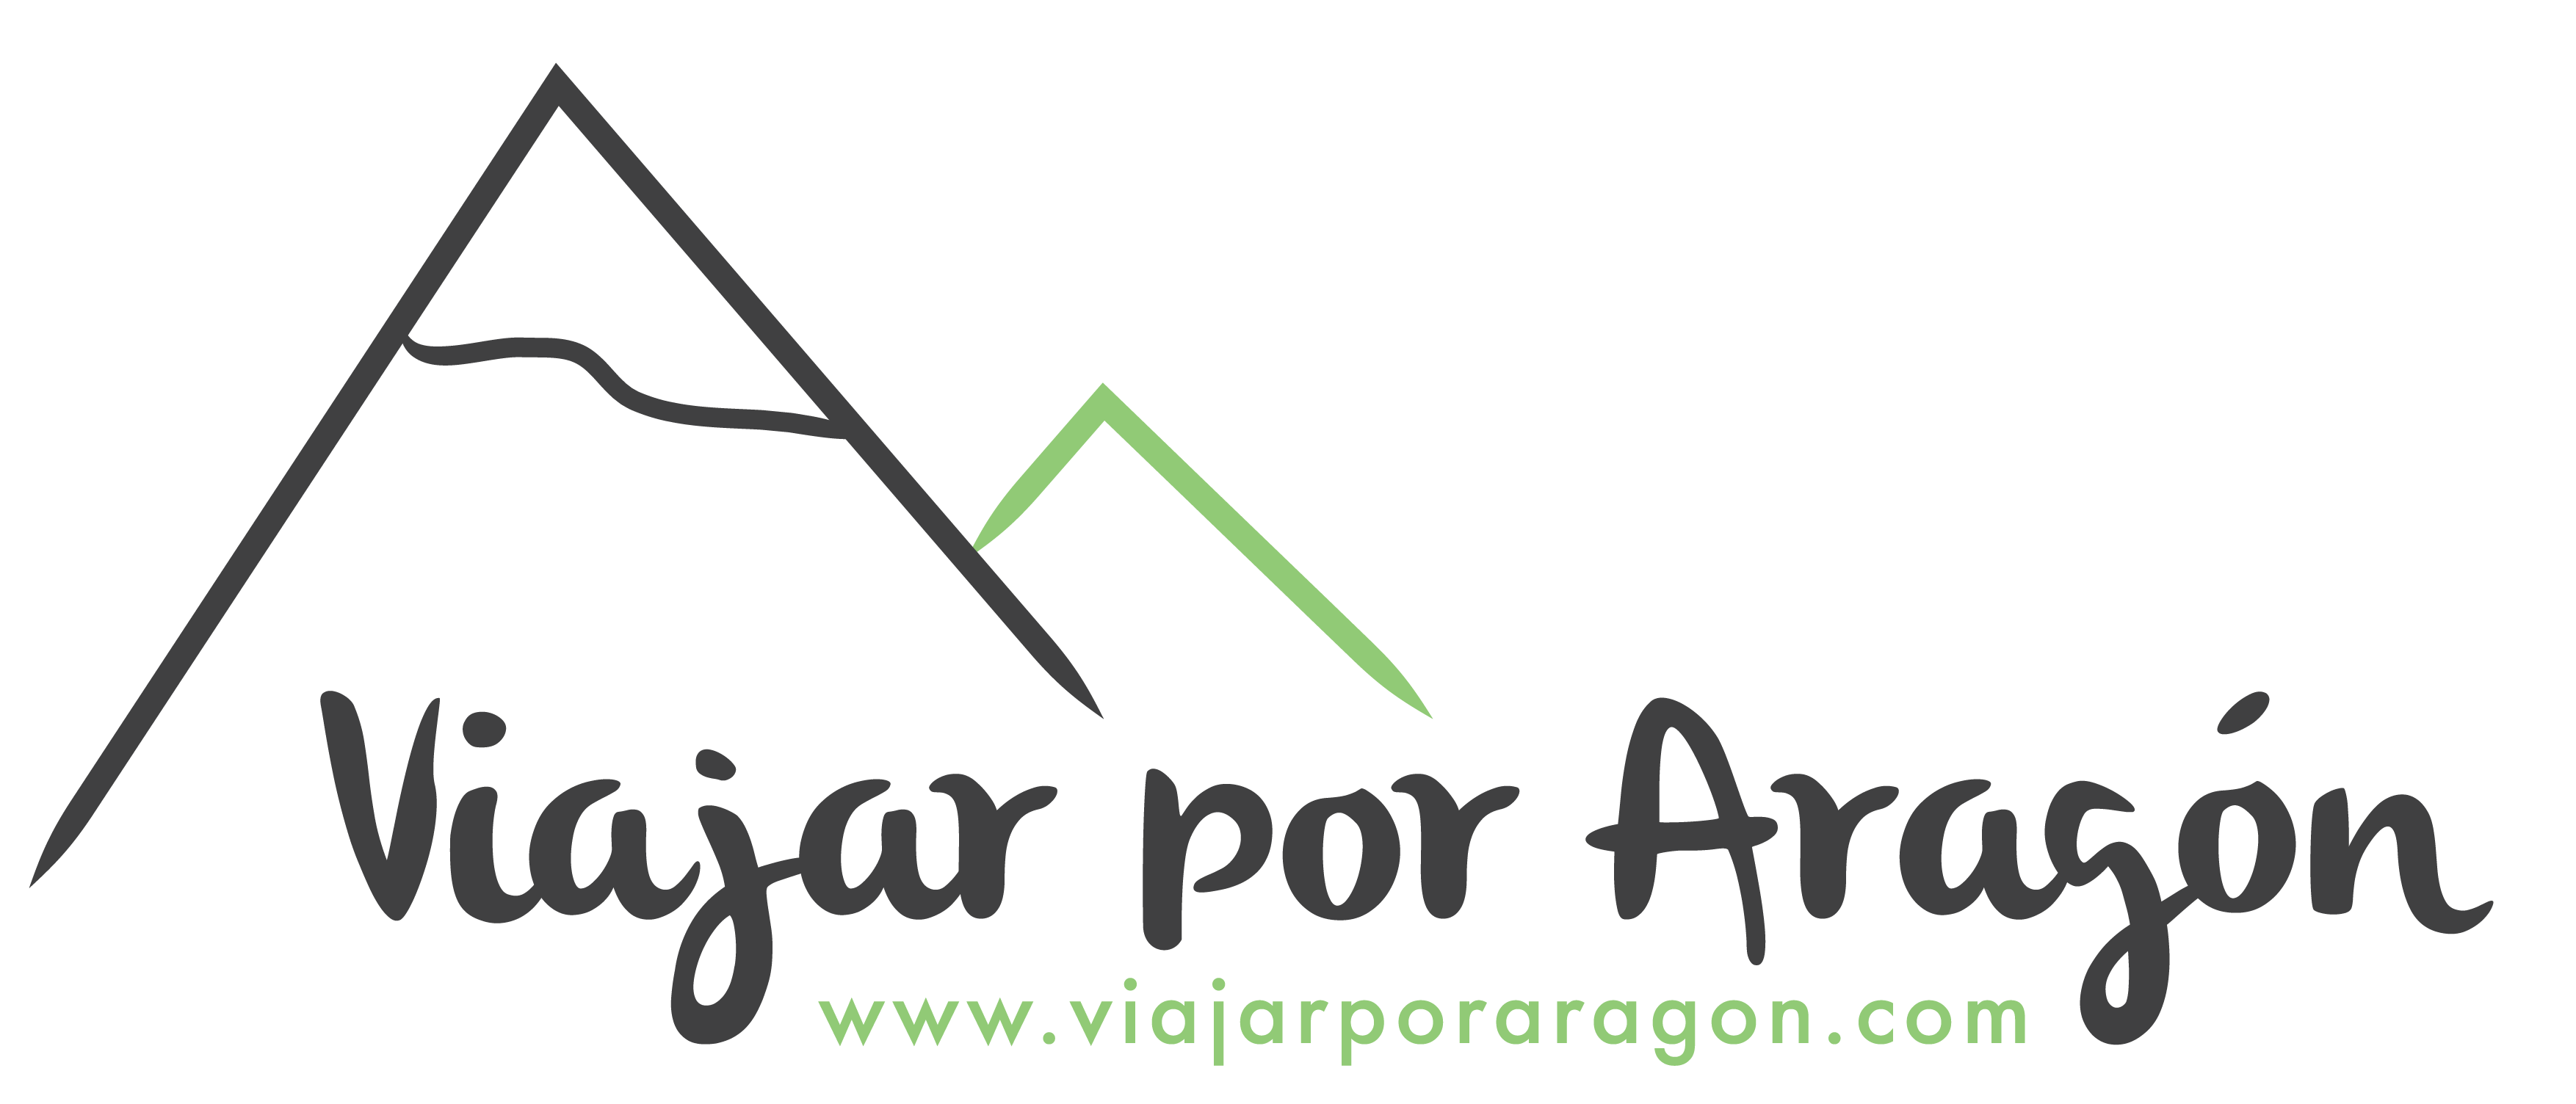 Viajar por Aragón - Excursiones, tours y escapadas | Viajar por Aragón – Excursiones, tours y escapadas   Visit Aragon, Zaragoza, Pyrenees (Spain) – Cultural tours, photo tours, adventure tours in Aragon with an English speaker guide